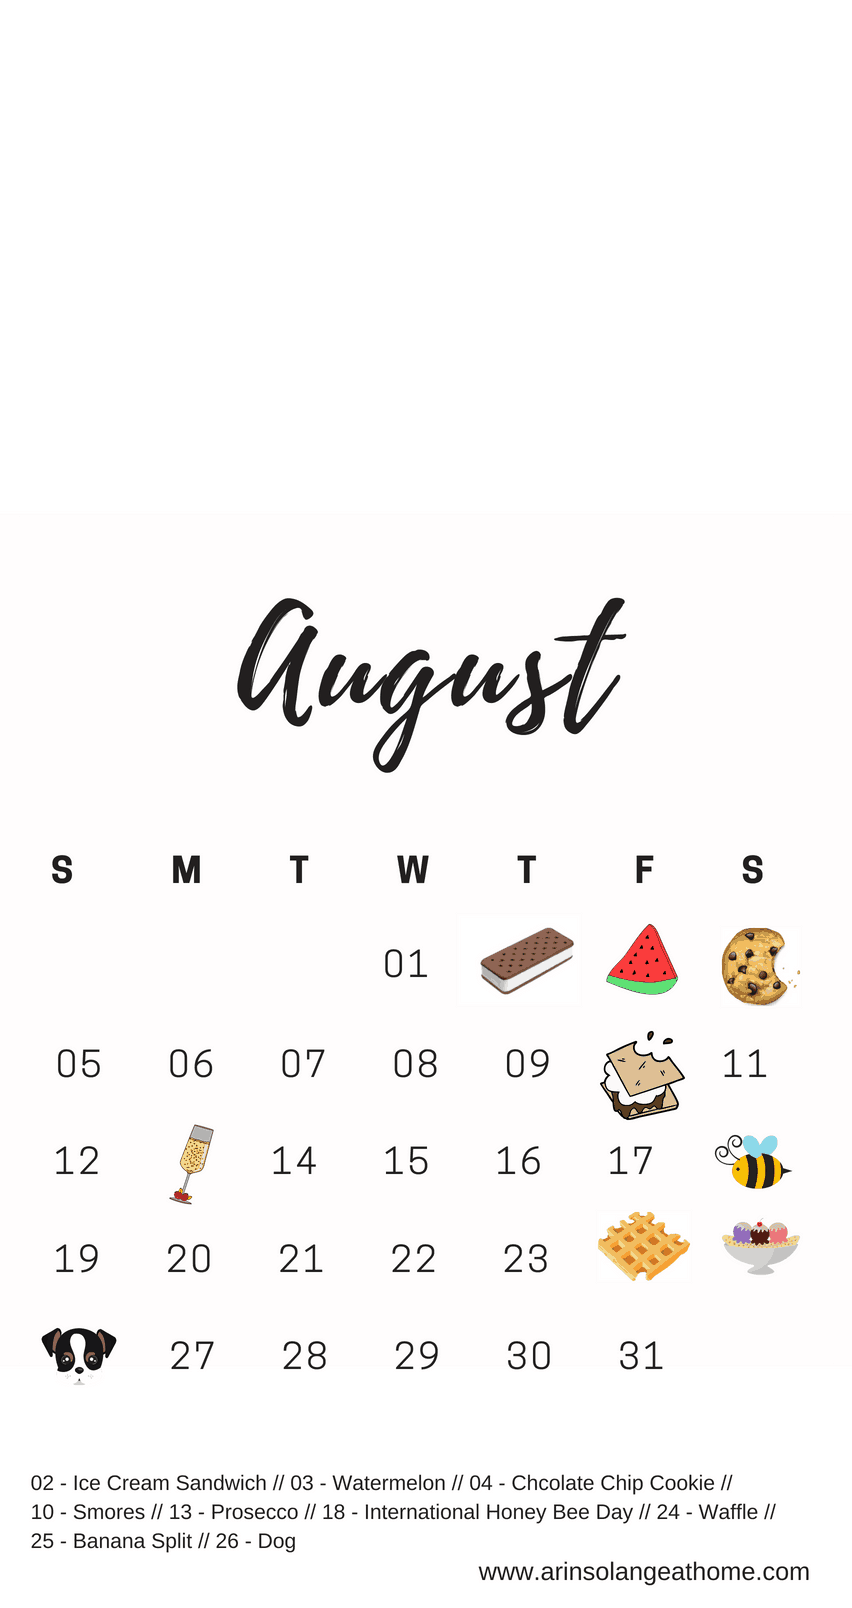 August National Holiday Calendar